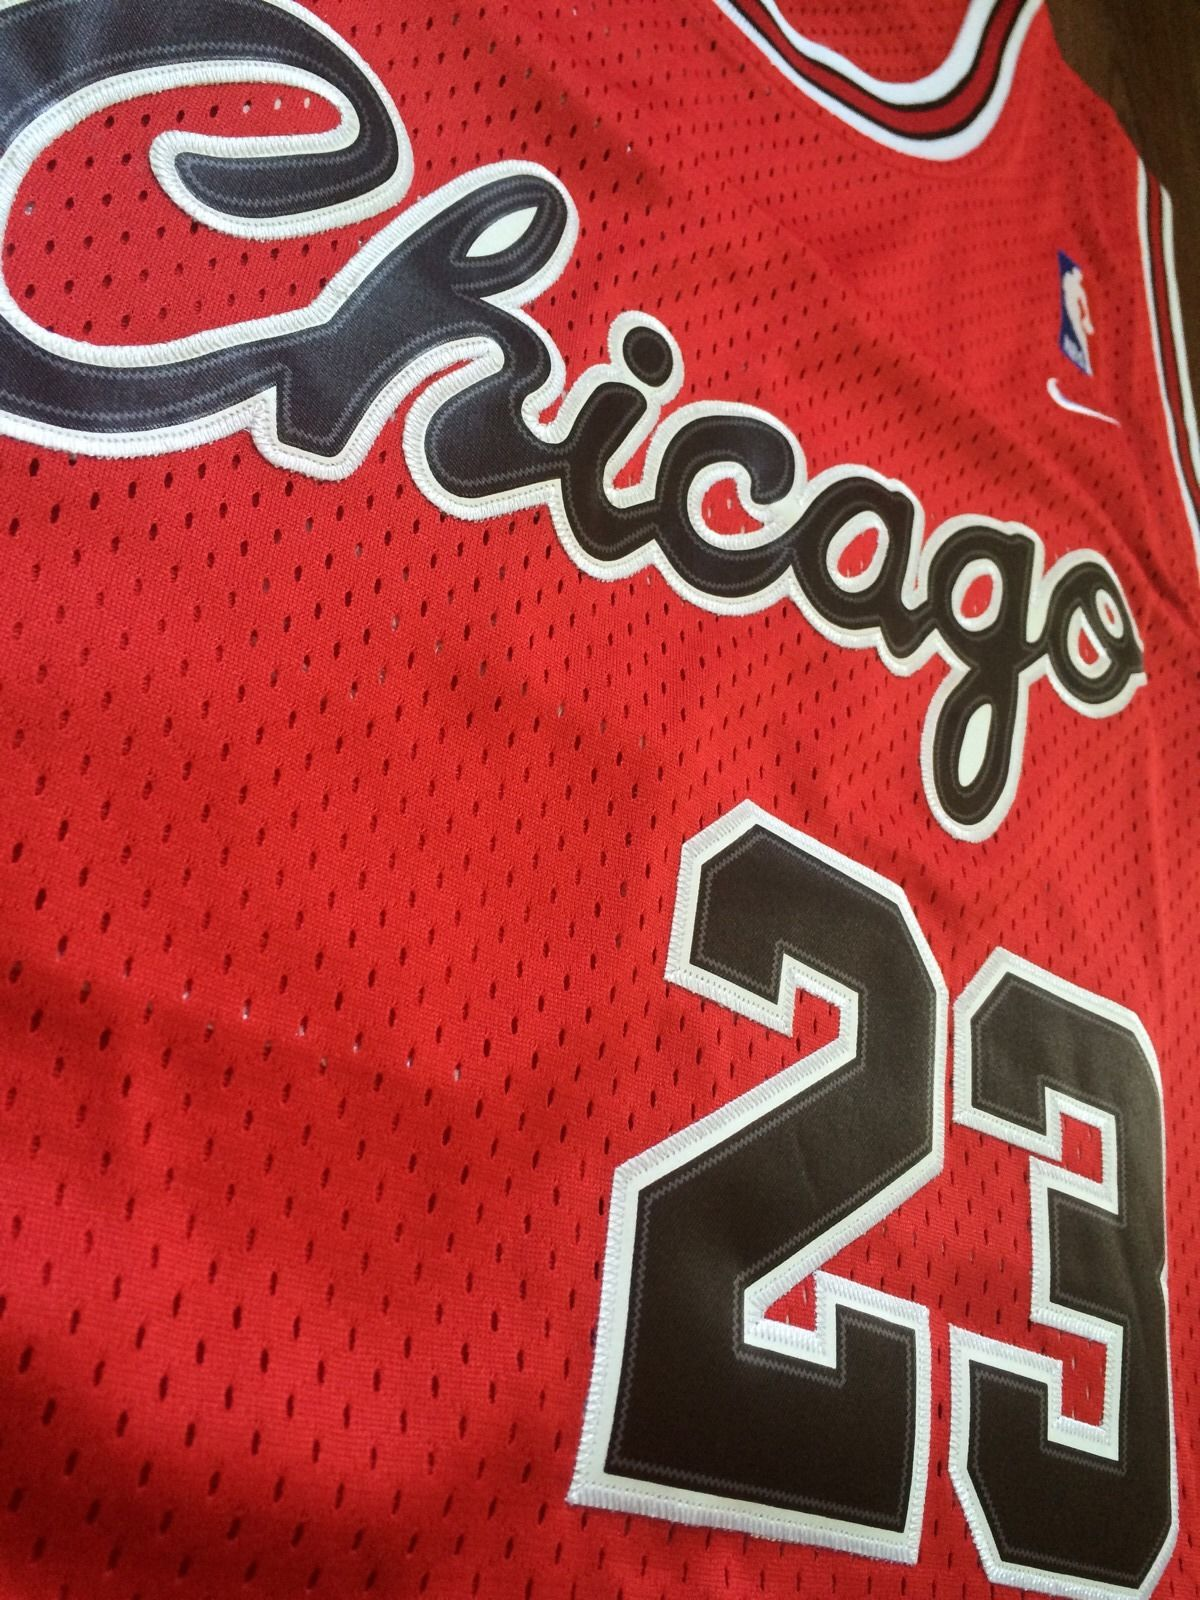 low priced be81d da9e2 Vintage Gear: Nike Michael Jordan Bulls Rookie Jersey - Air ...